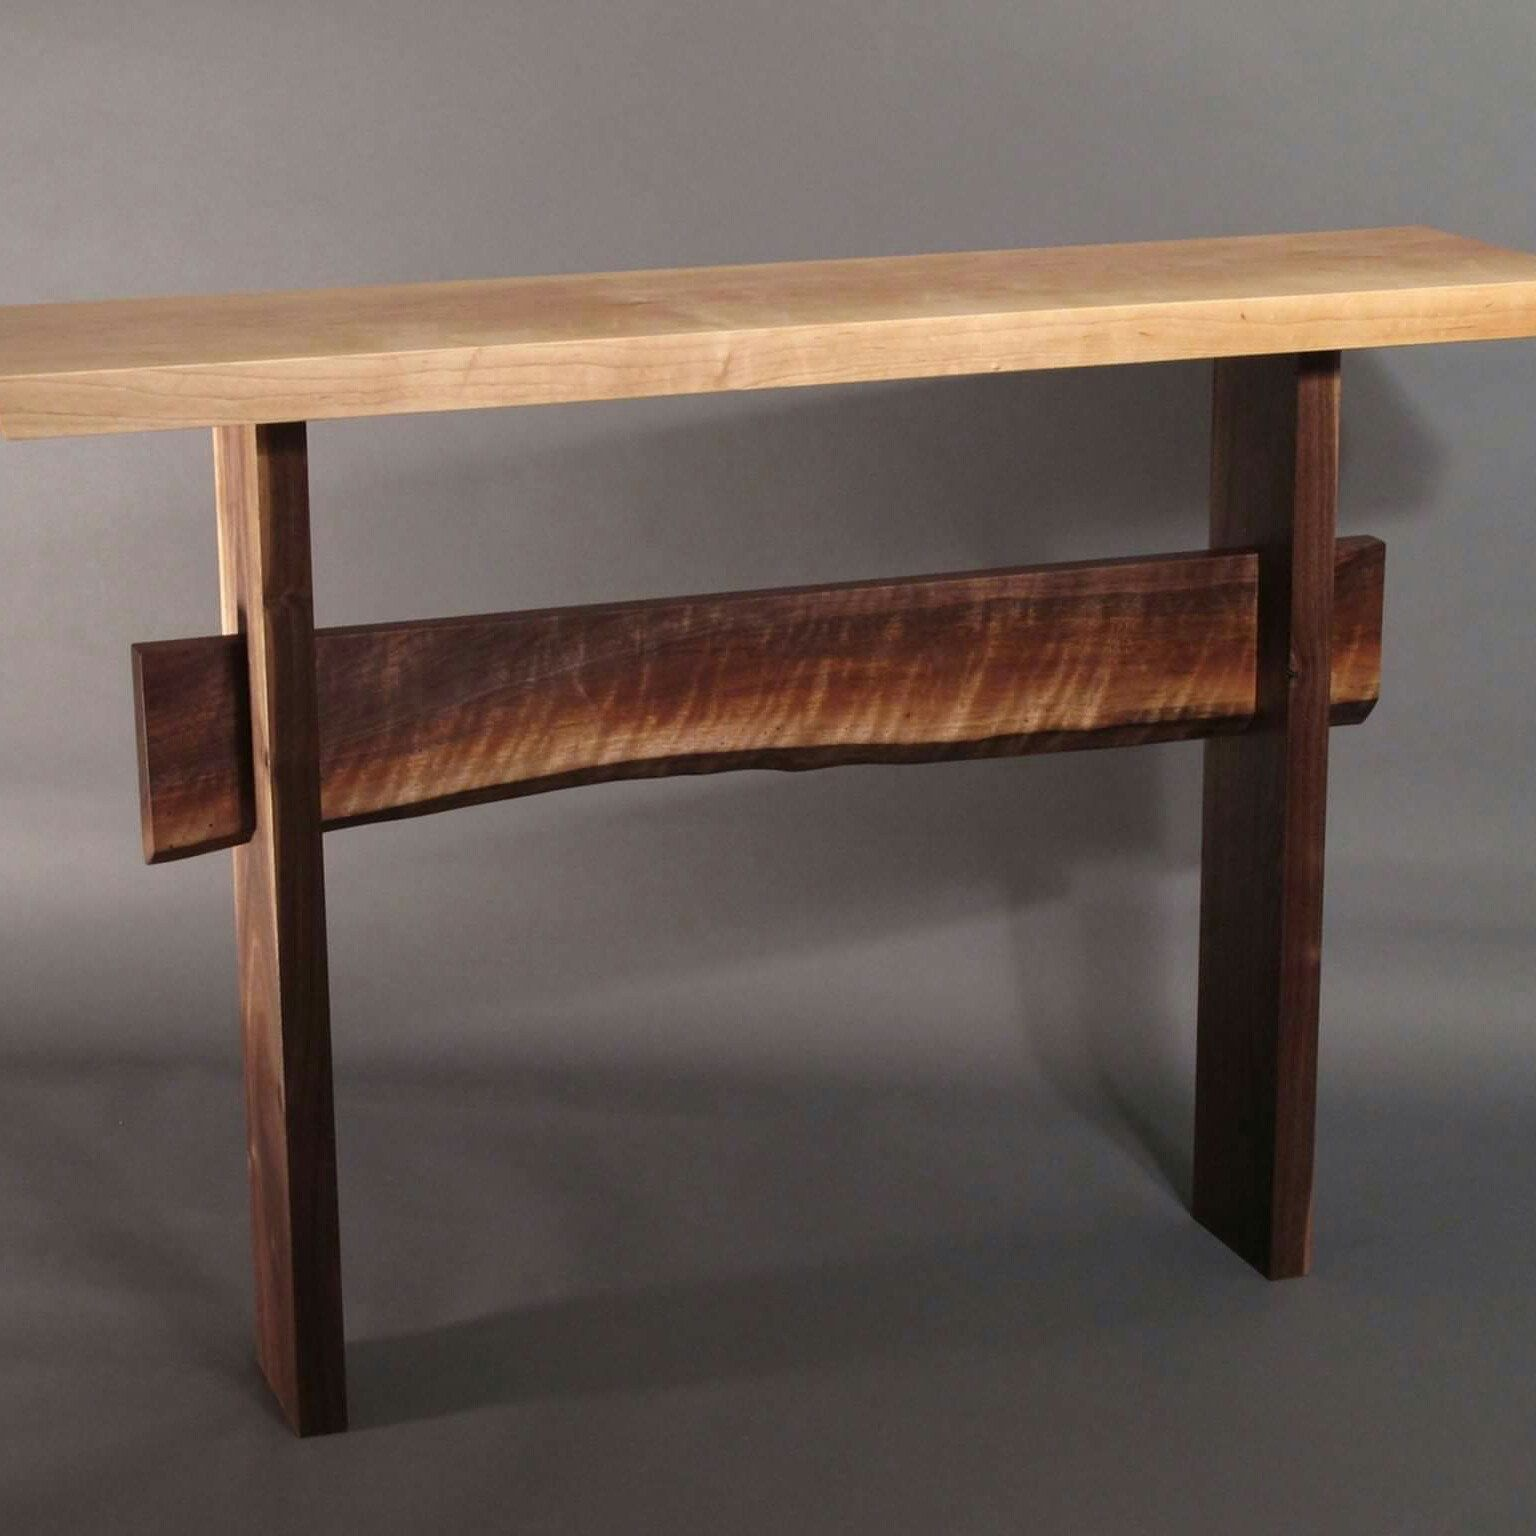 Charming Console Table W/ Live Edge Stretcher  Minimalist Modern Hall Table, Narrow  Entry Table  STATEMENT COLLECTION